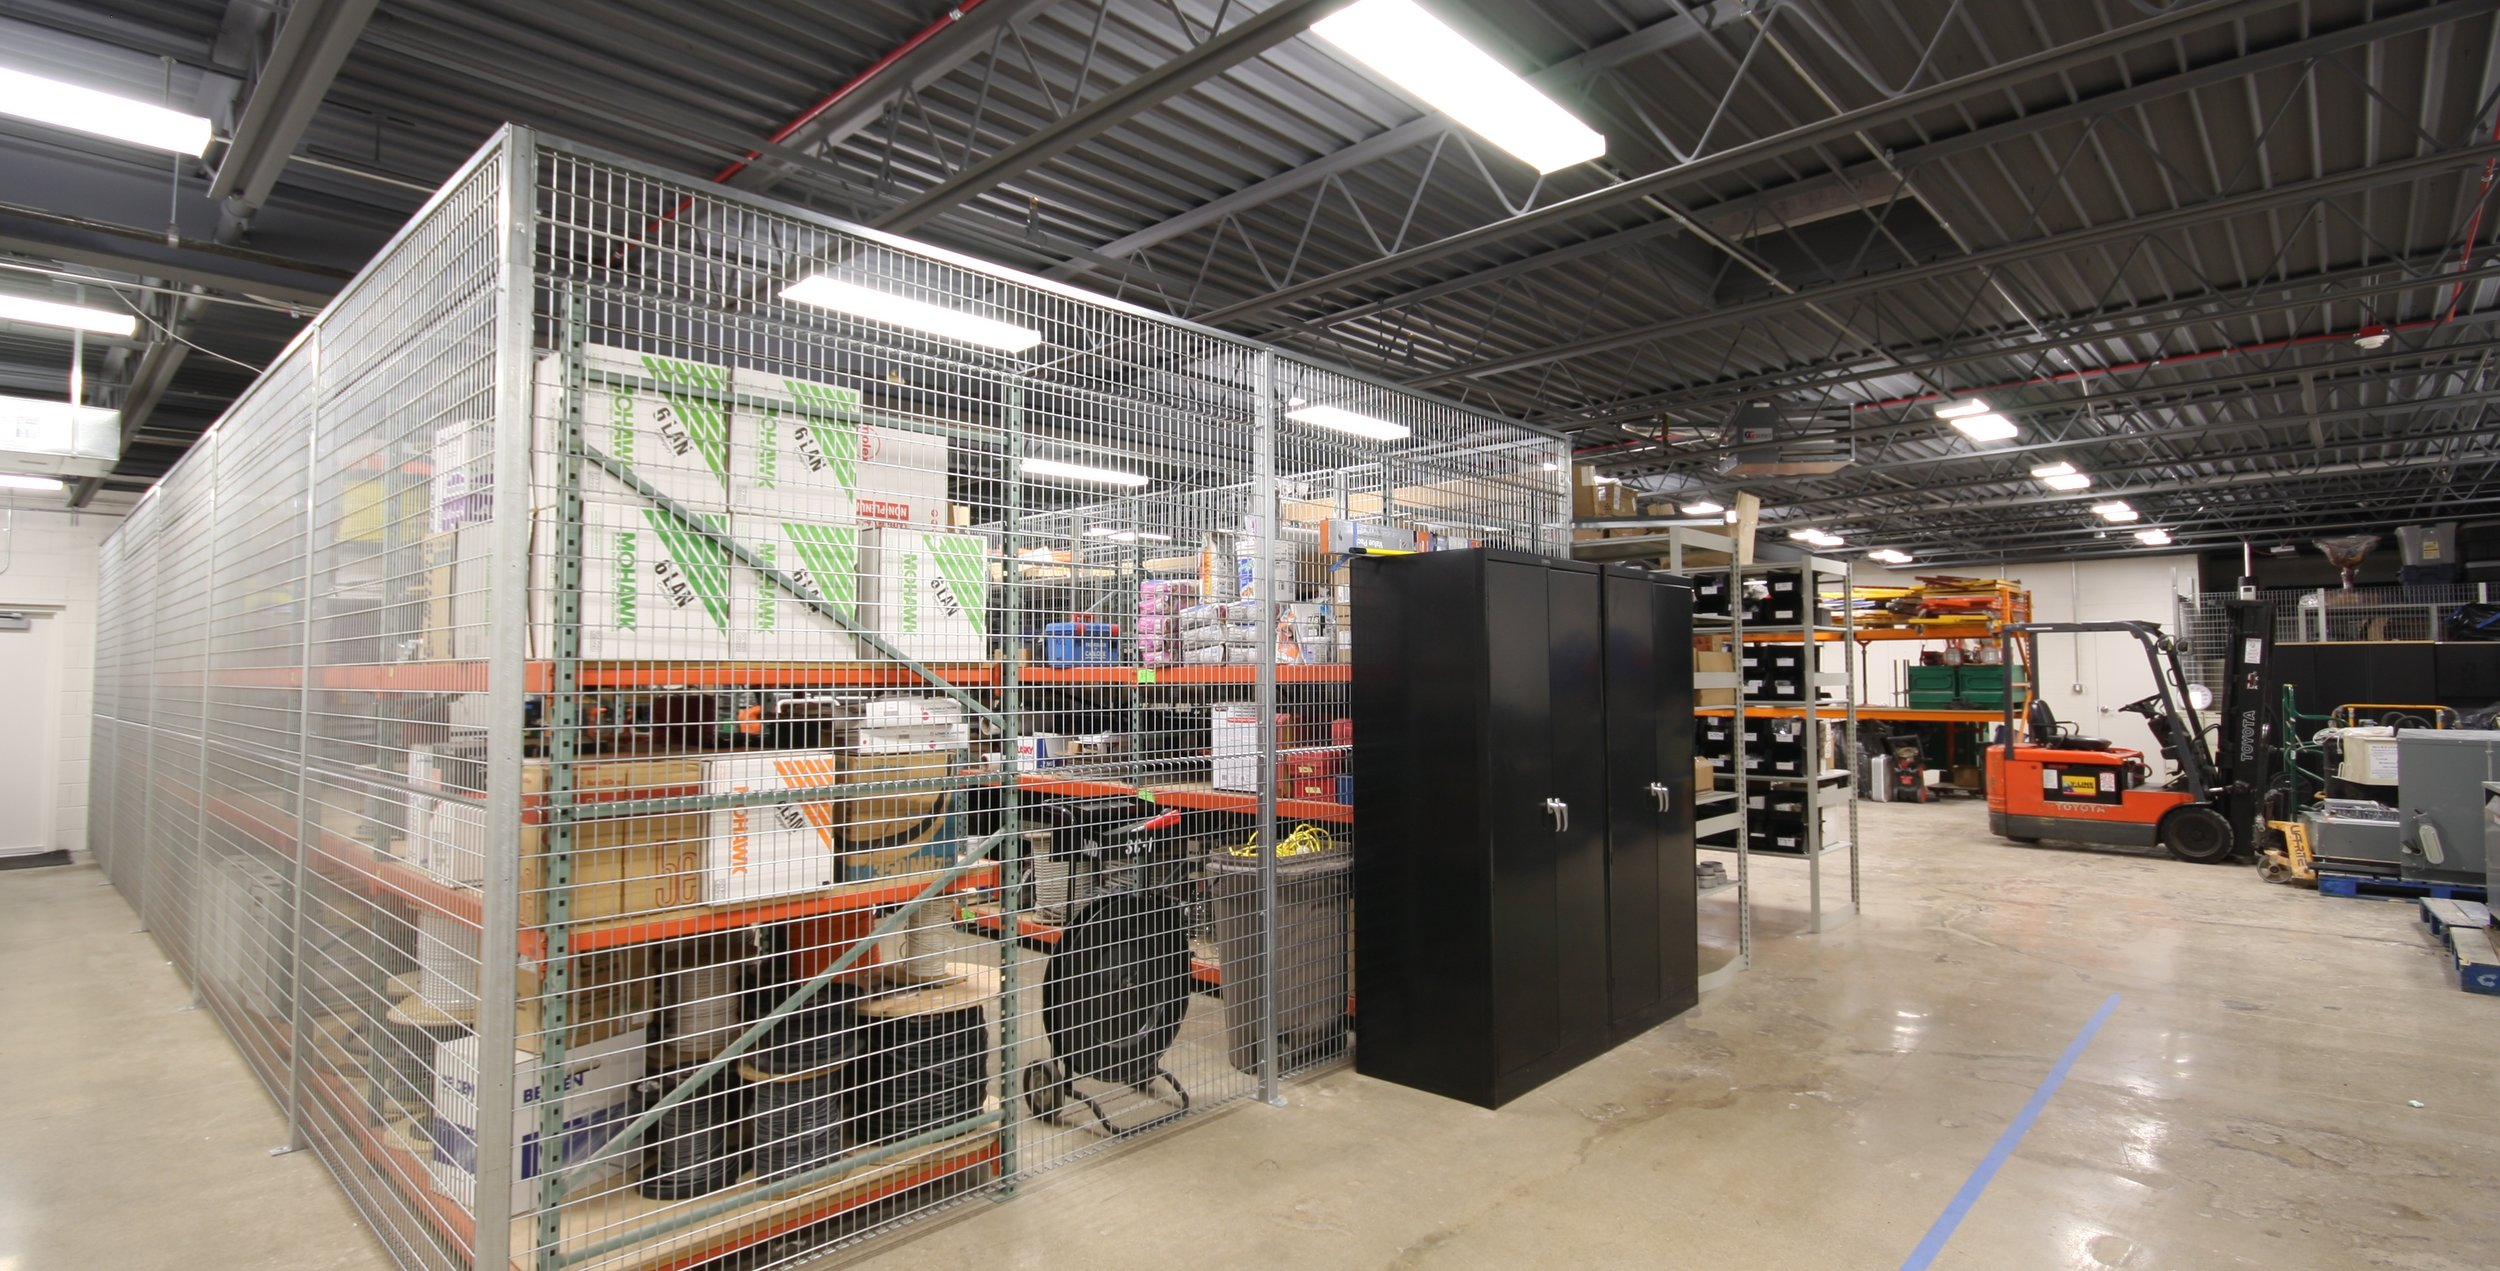 MDI ACCESS CORPORATE HEADQUARTERS_WAREHOUSE CAGE.JPG